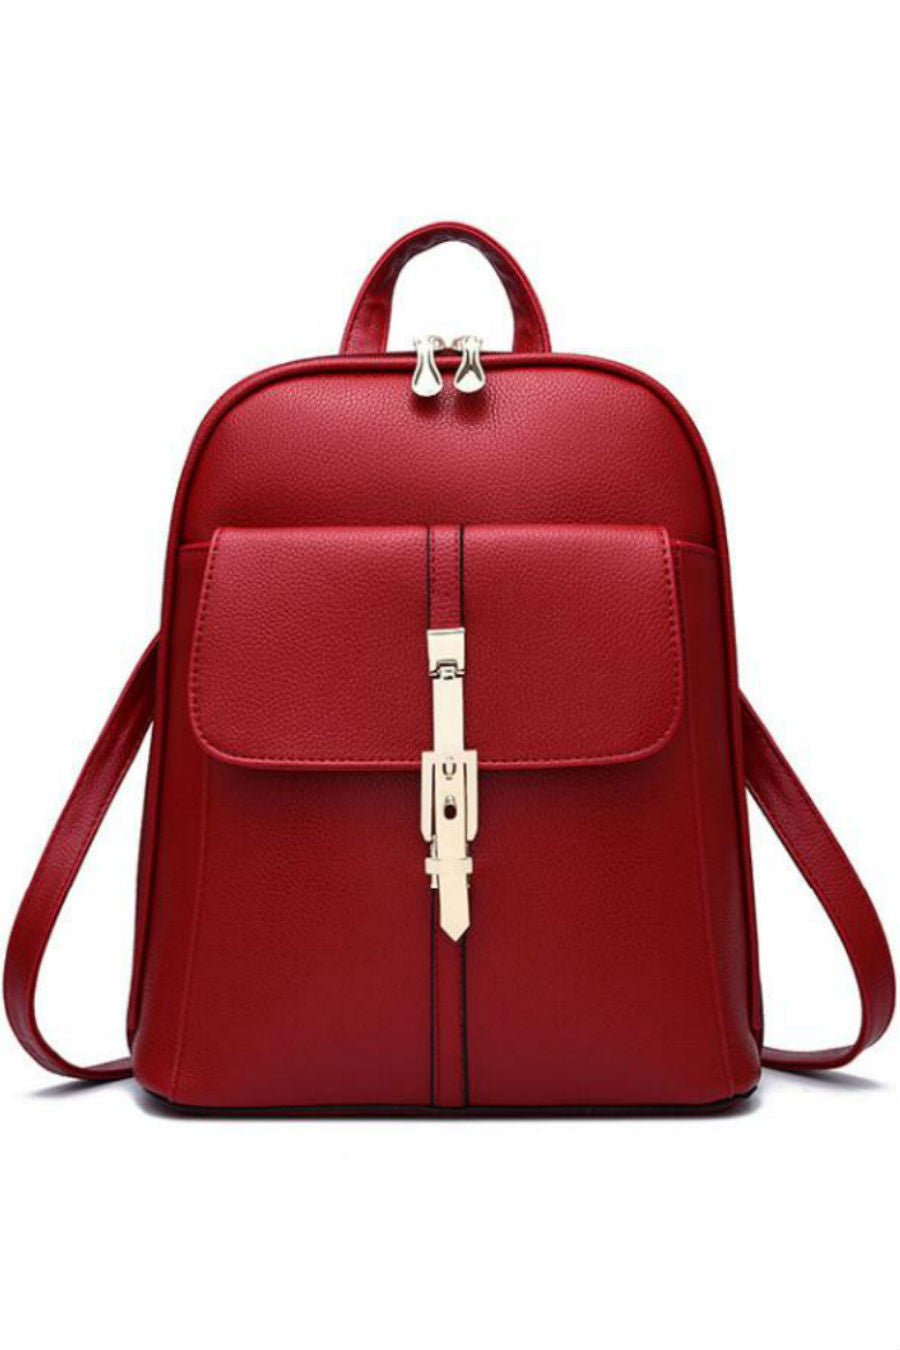 Classic Red Leather Backpack